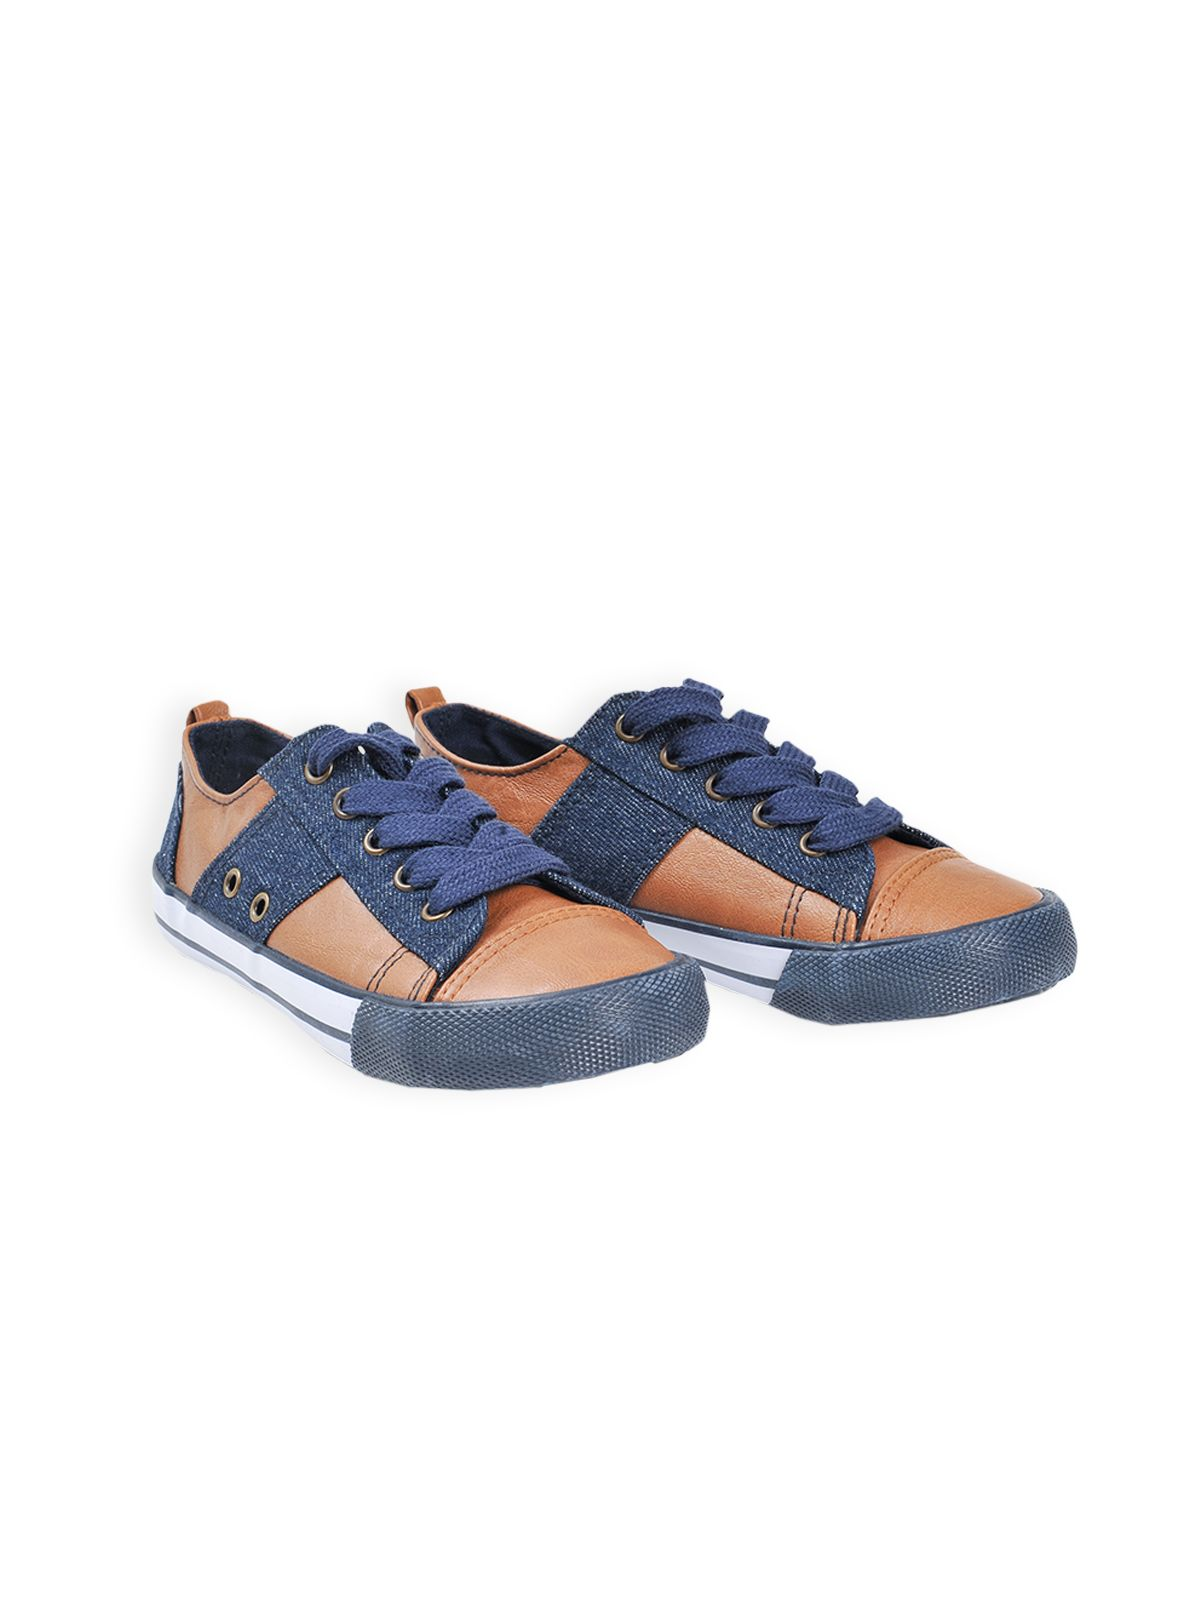 Boys city slick pu sneaker